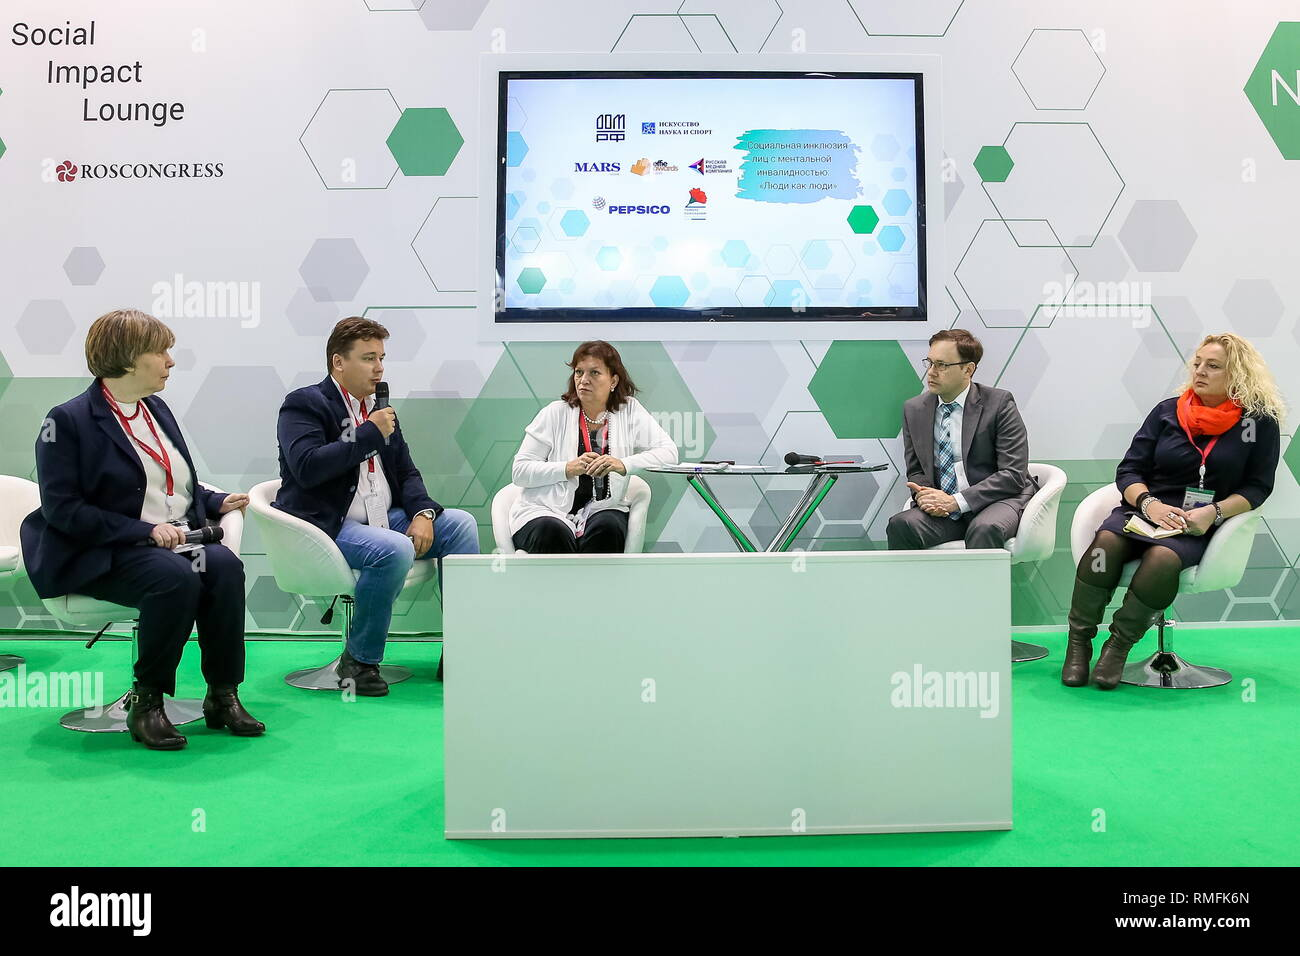 SOCHI, RUSSIA - FEBRUARY 15, 2019: Chief Specialist at Tretyakov Gallery Yelena Gerasimova (L), the President of the Soyedineniye Fund for the blind-and-deaf/Chairman of the Council of Russia's Forum of Donors, Dmitry Polikanov (2nd L), the Head of the All-Russian Organisation for the Parents of Children with Disabilites, Yelena Klochko (C), Russia's Deputy Minister of Labour and Social Protection Grigory Lekarev (2nd R), and the Director of the Obraz Zhizni charity fund, Yelena Beregovaya (R) at the session 'Social Inclusion of Individuals with Mental Disabilities: ' at the 2019 Russian Inves - Stock Image